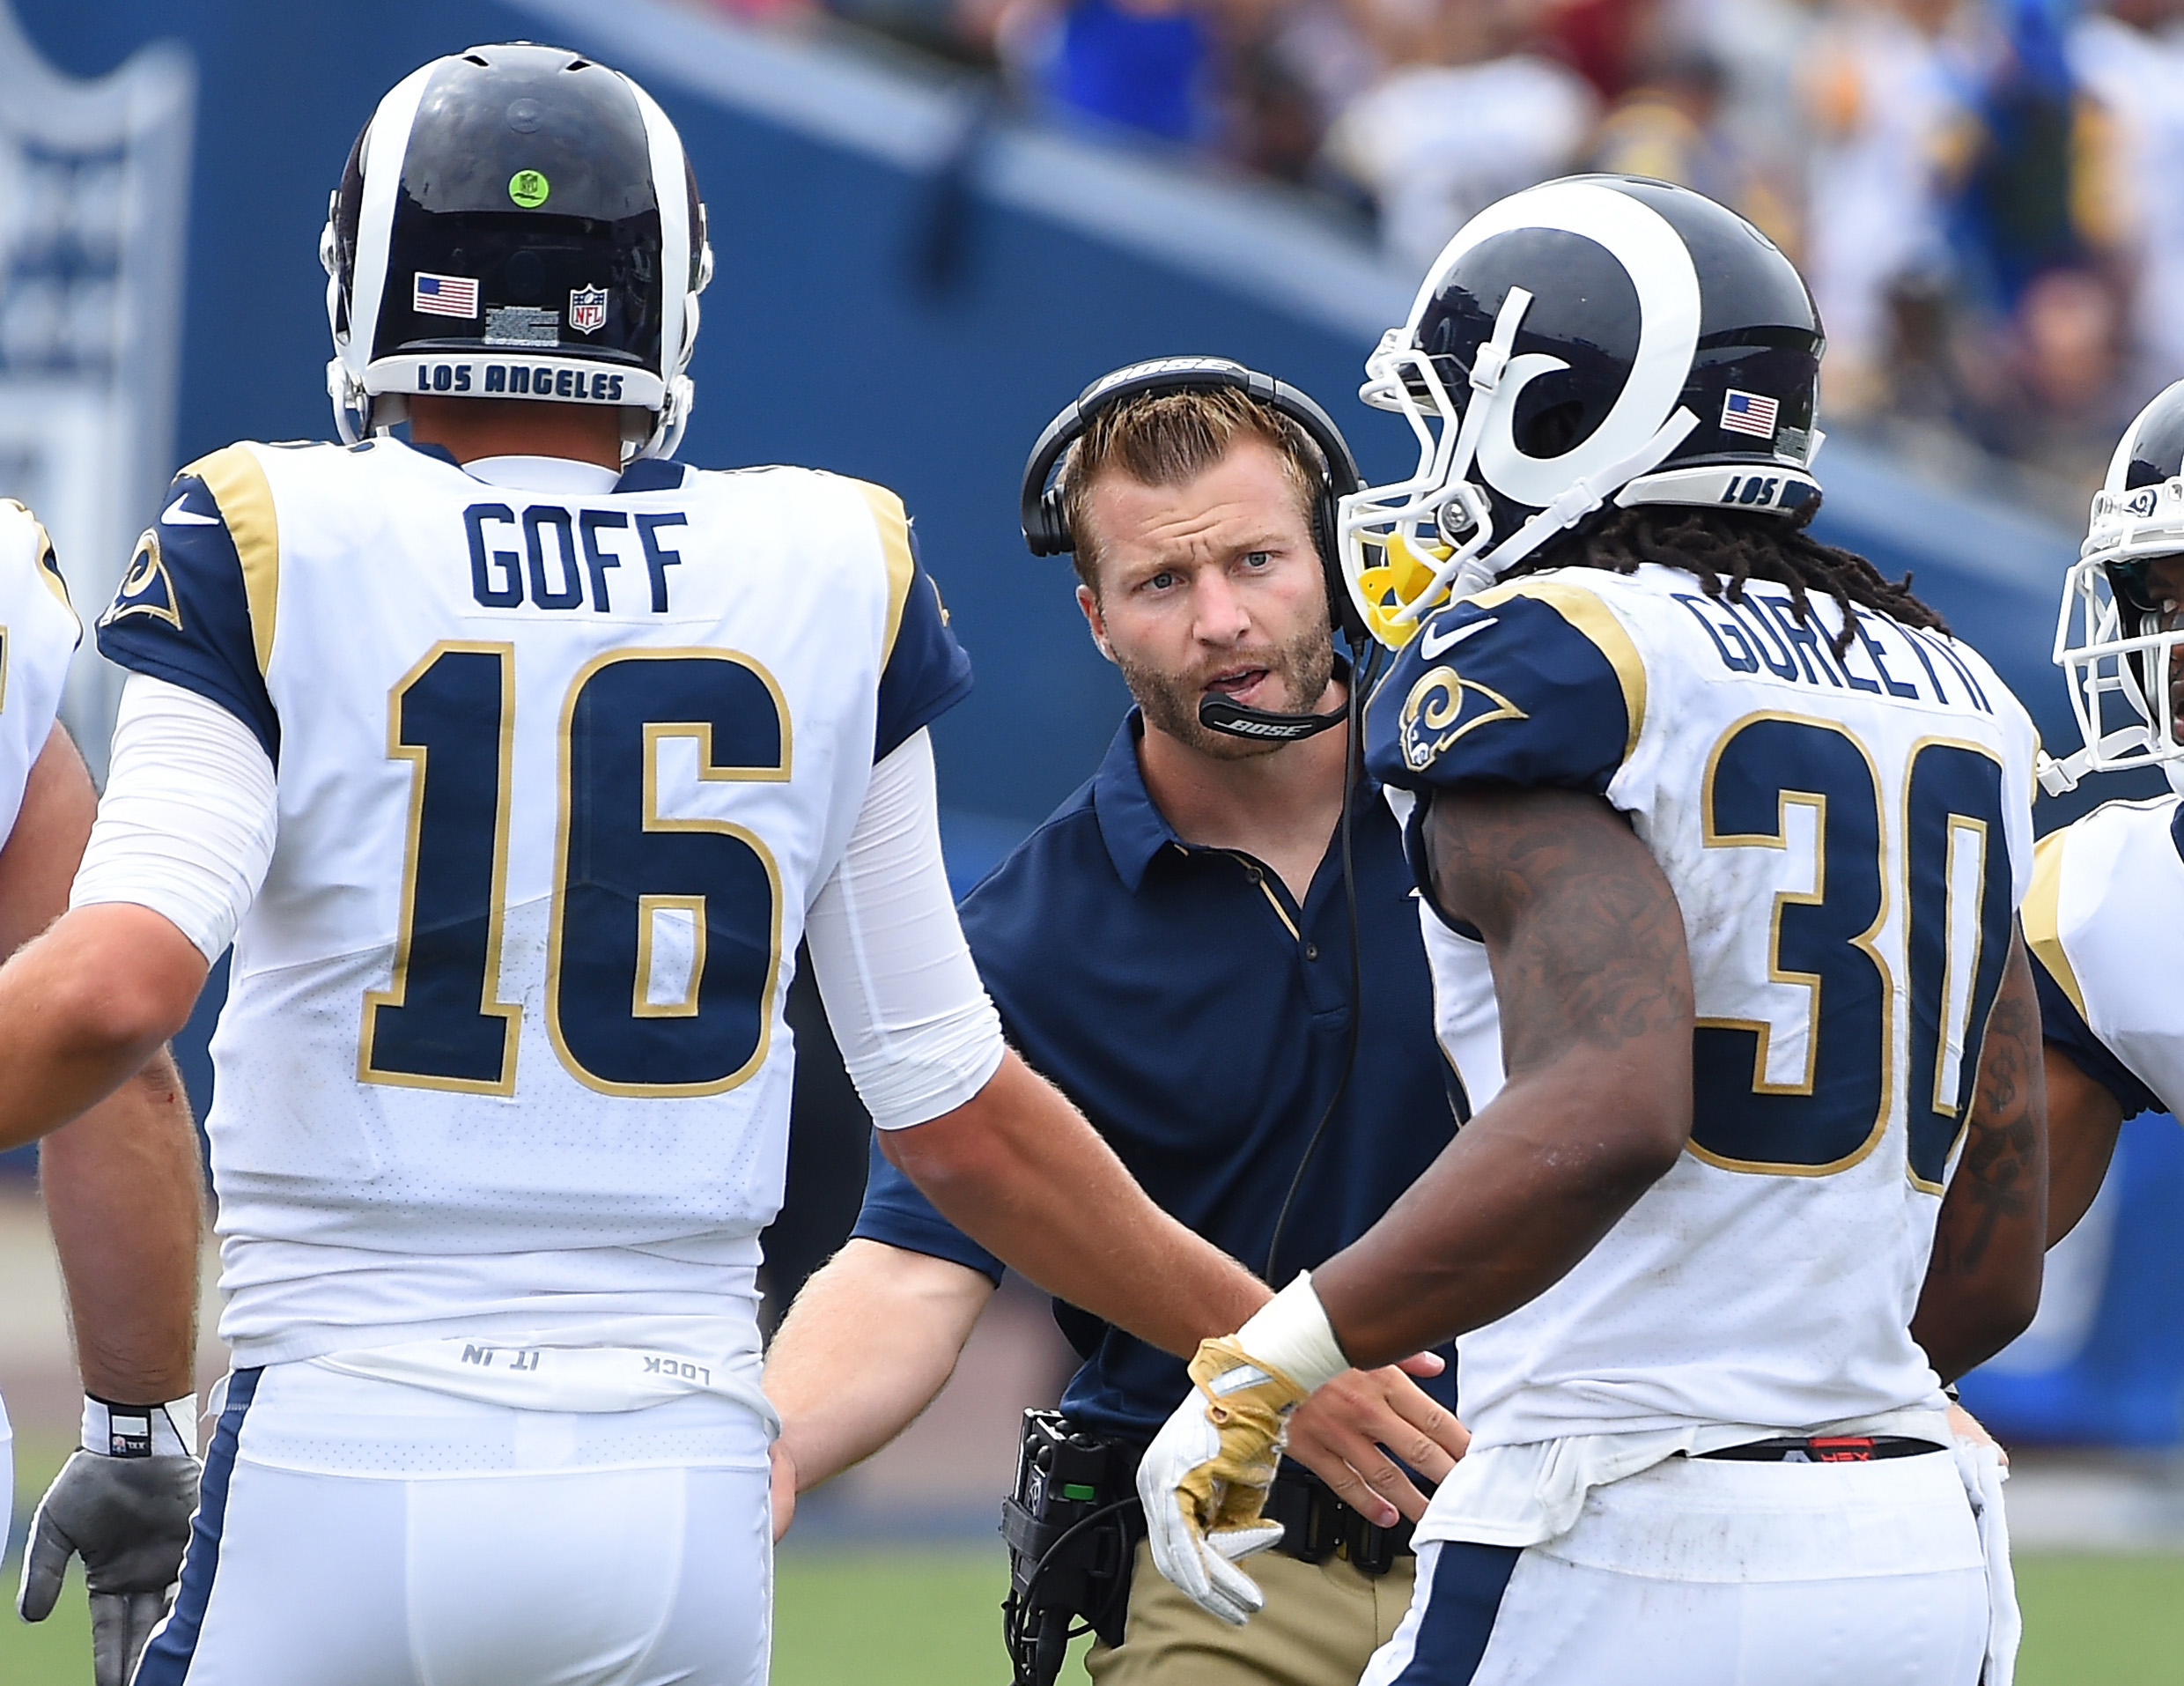 Los Angeles Rams HC Sean McVay congratulates QB Jared Goff and RB Todd Gurley (30) after a touchdown in Week 2, Sep. 17, 2017.